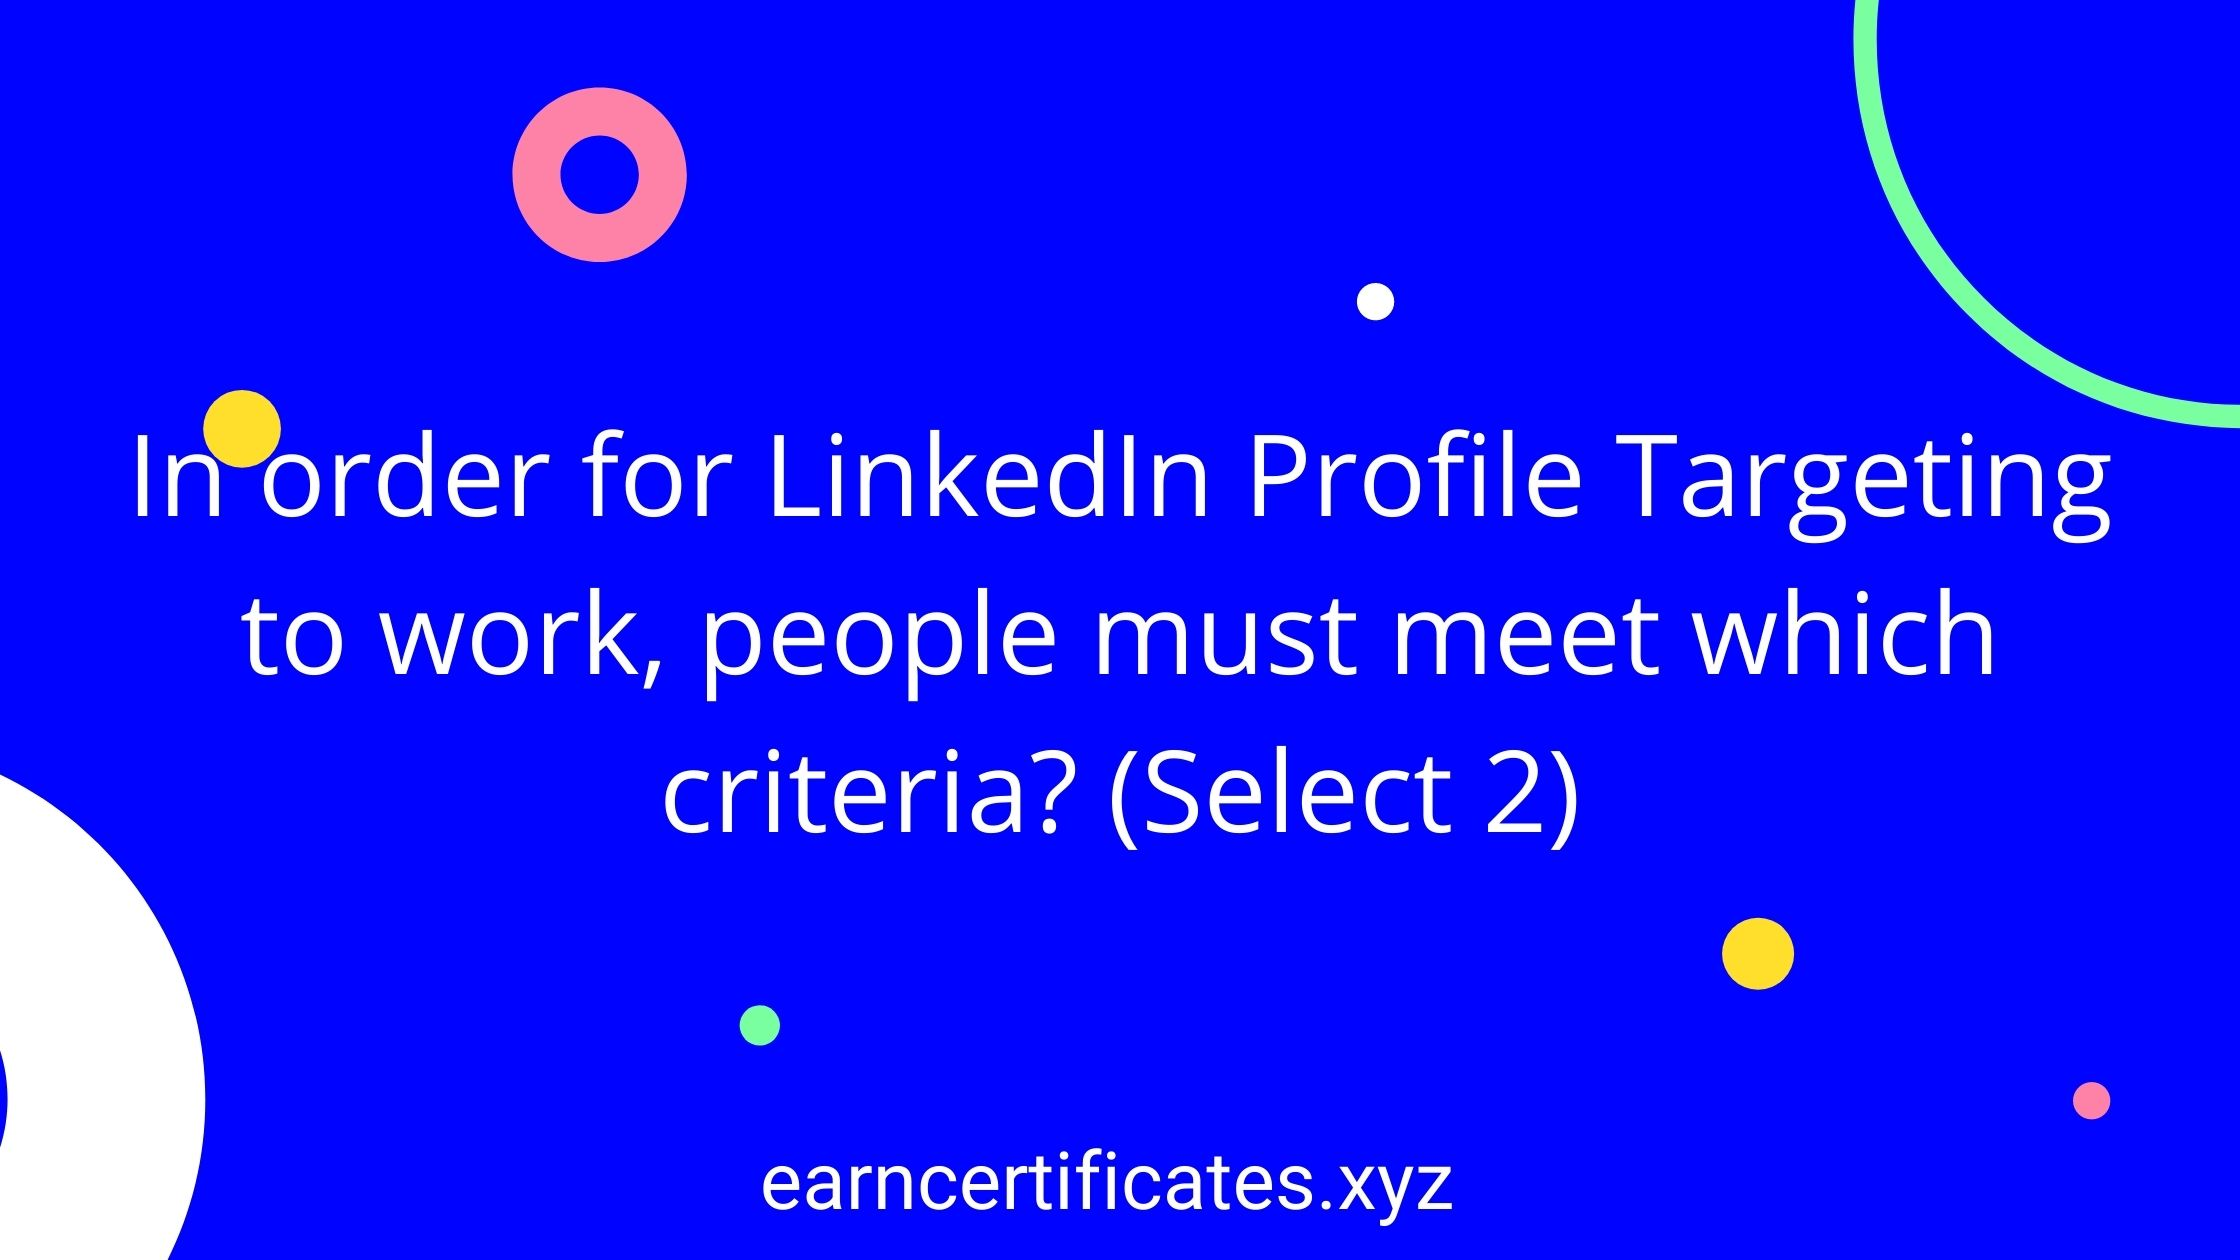 In order for LinkedIn Profile Targeting to work, people must meet which criteria? (Select 2)